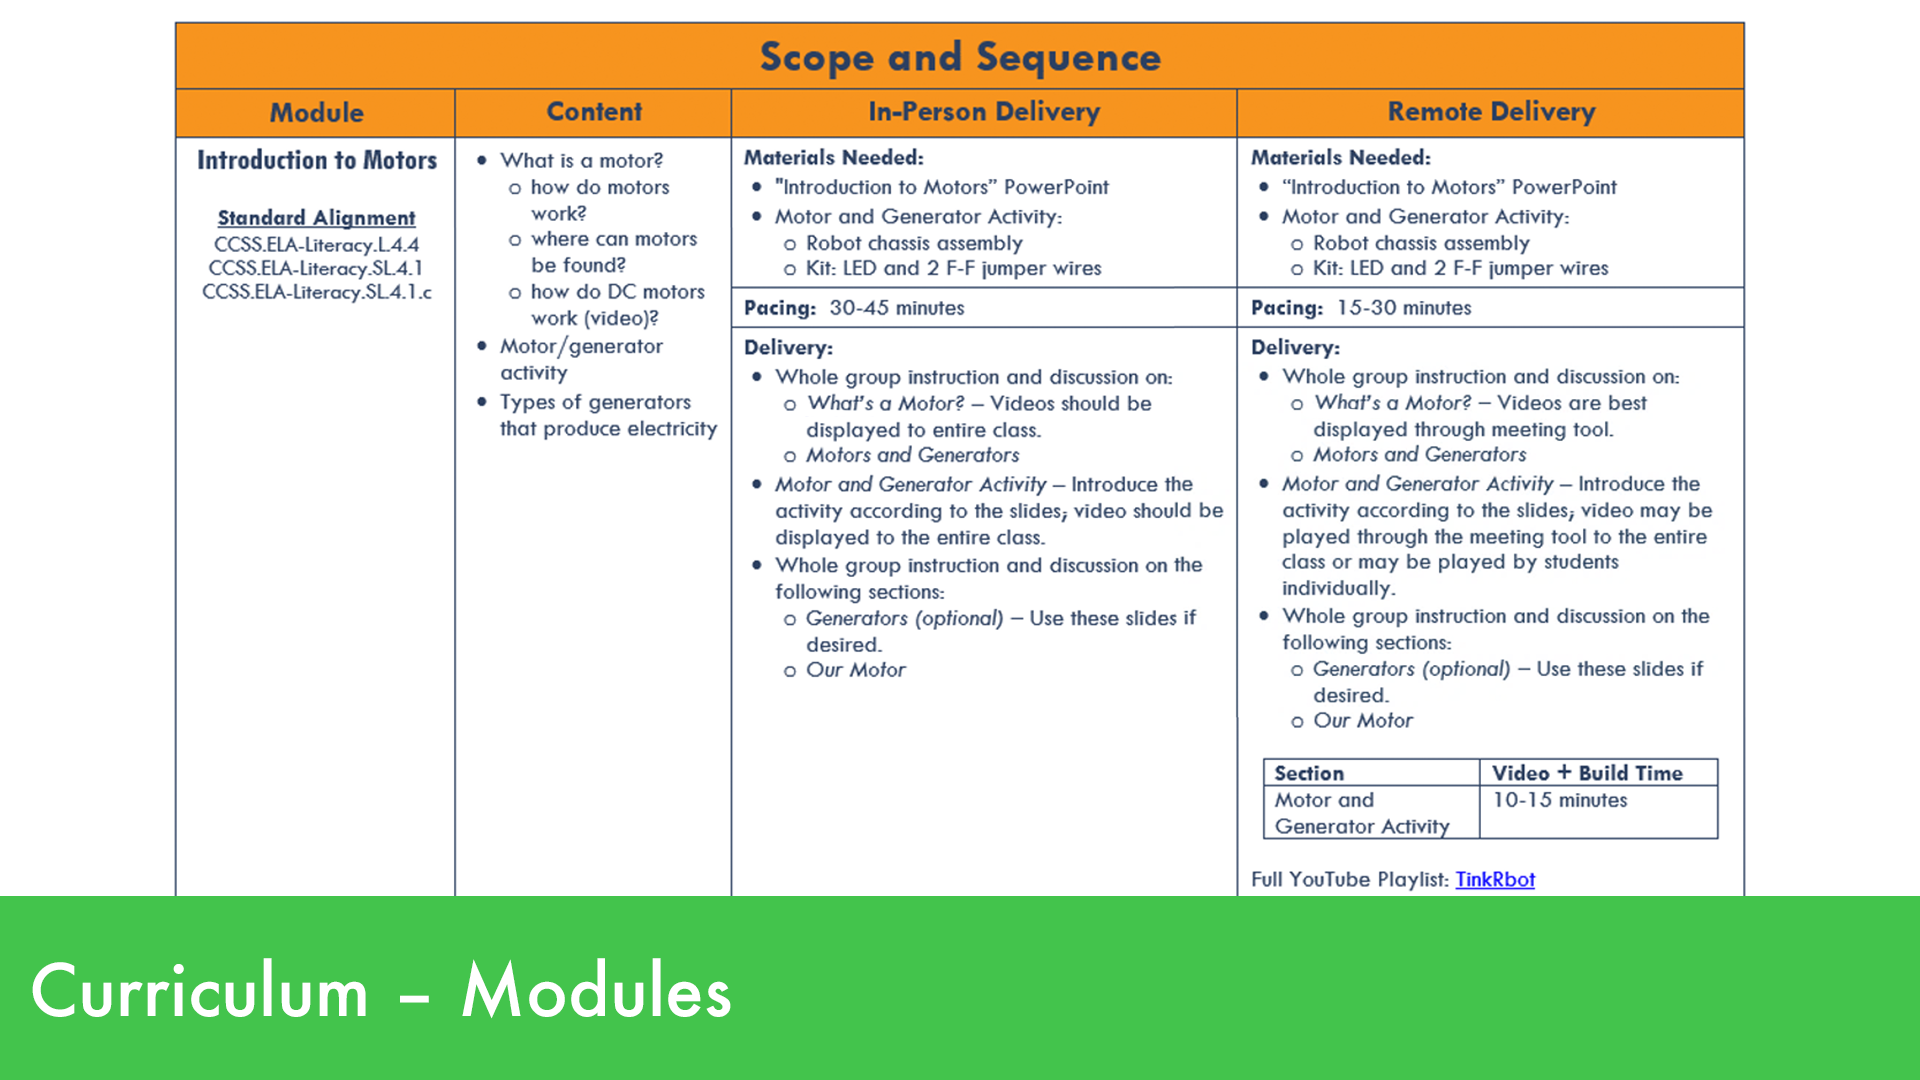 Scope and Sequence